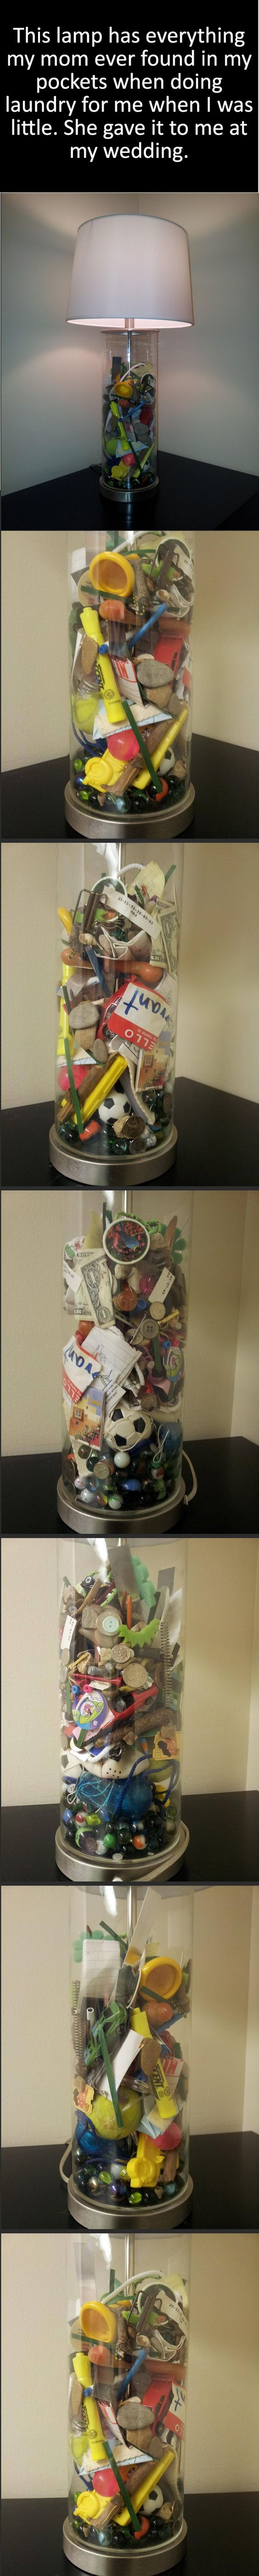 LOVE THIS IDEA!!! A mother saved all the things she found in her son's pockets when doing the laundry. She gave him this lamp with all things found for his wedding- wow! What an amazing idea!